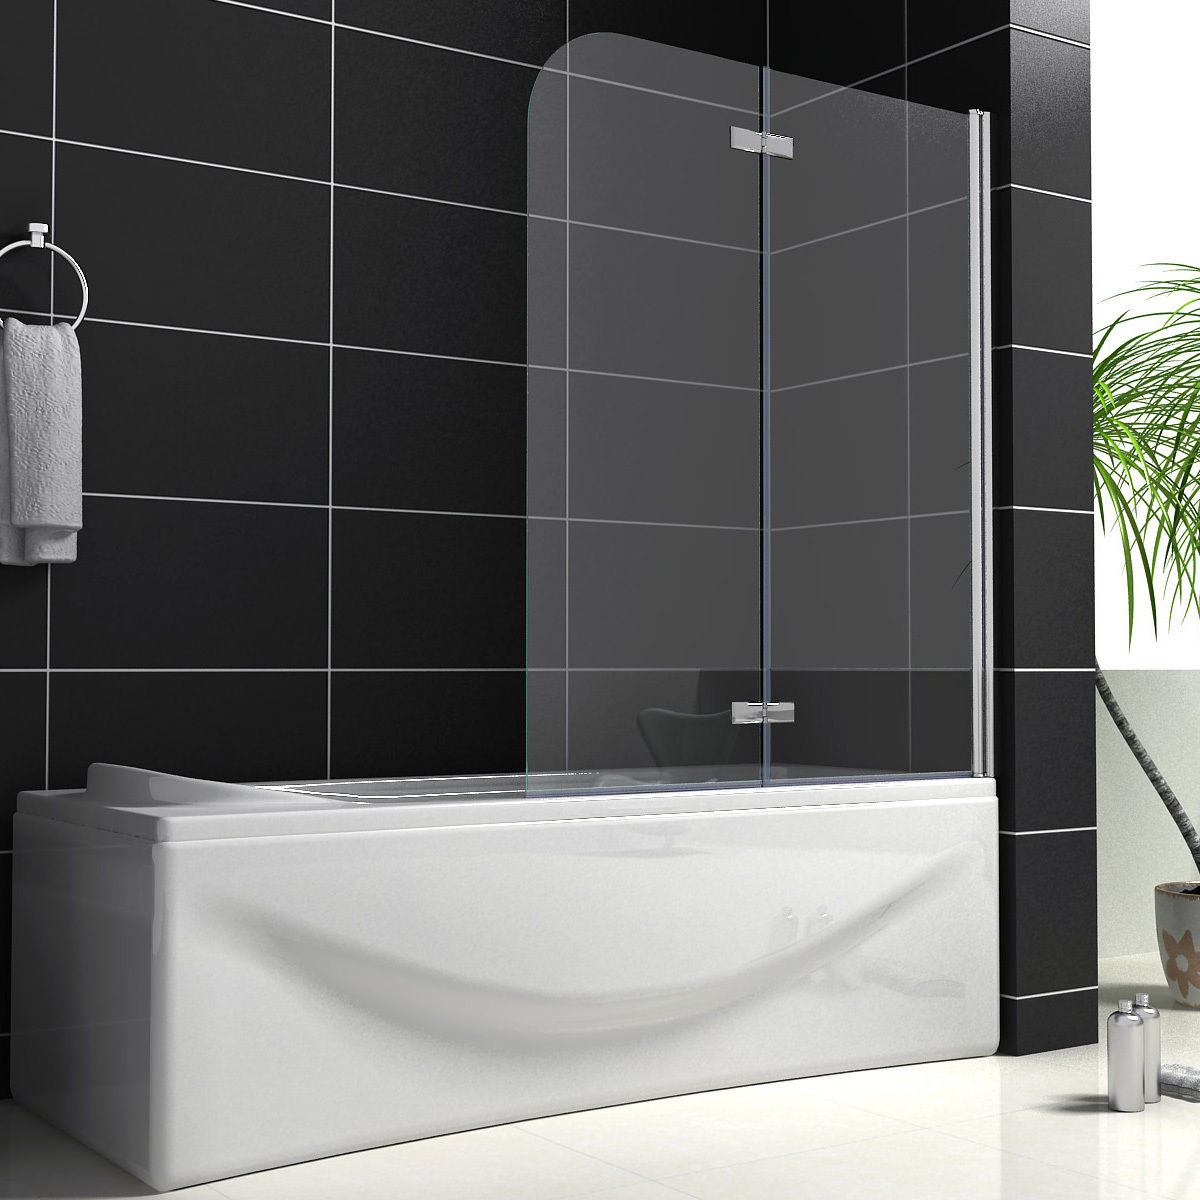 Image Result For How To Make A Bathtub Into A Shower